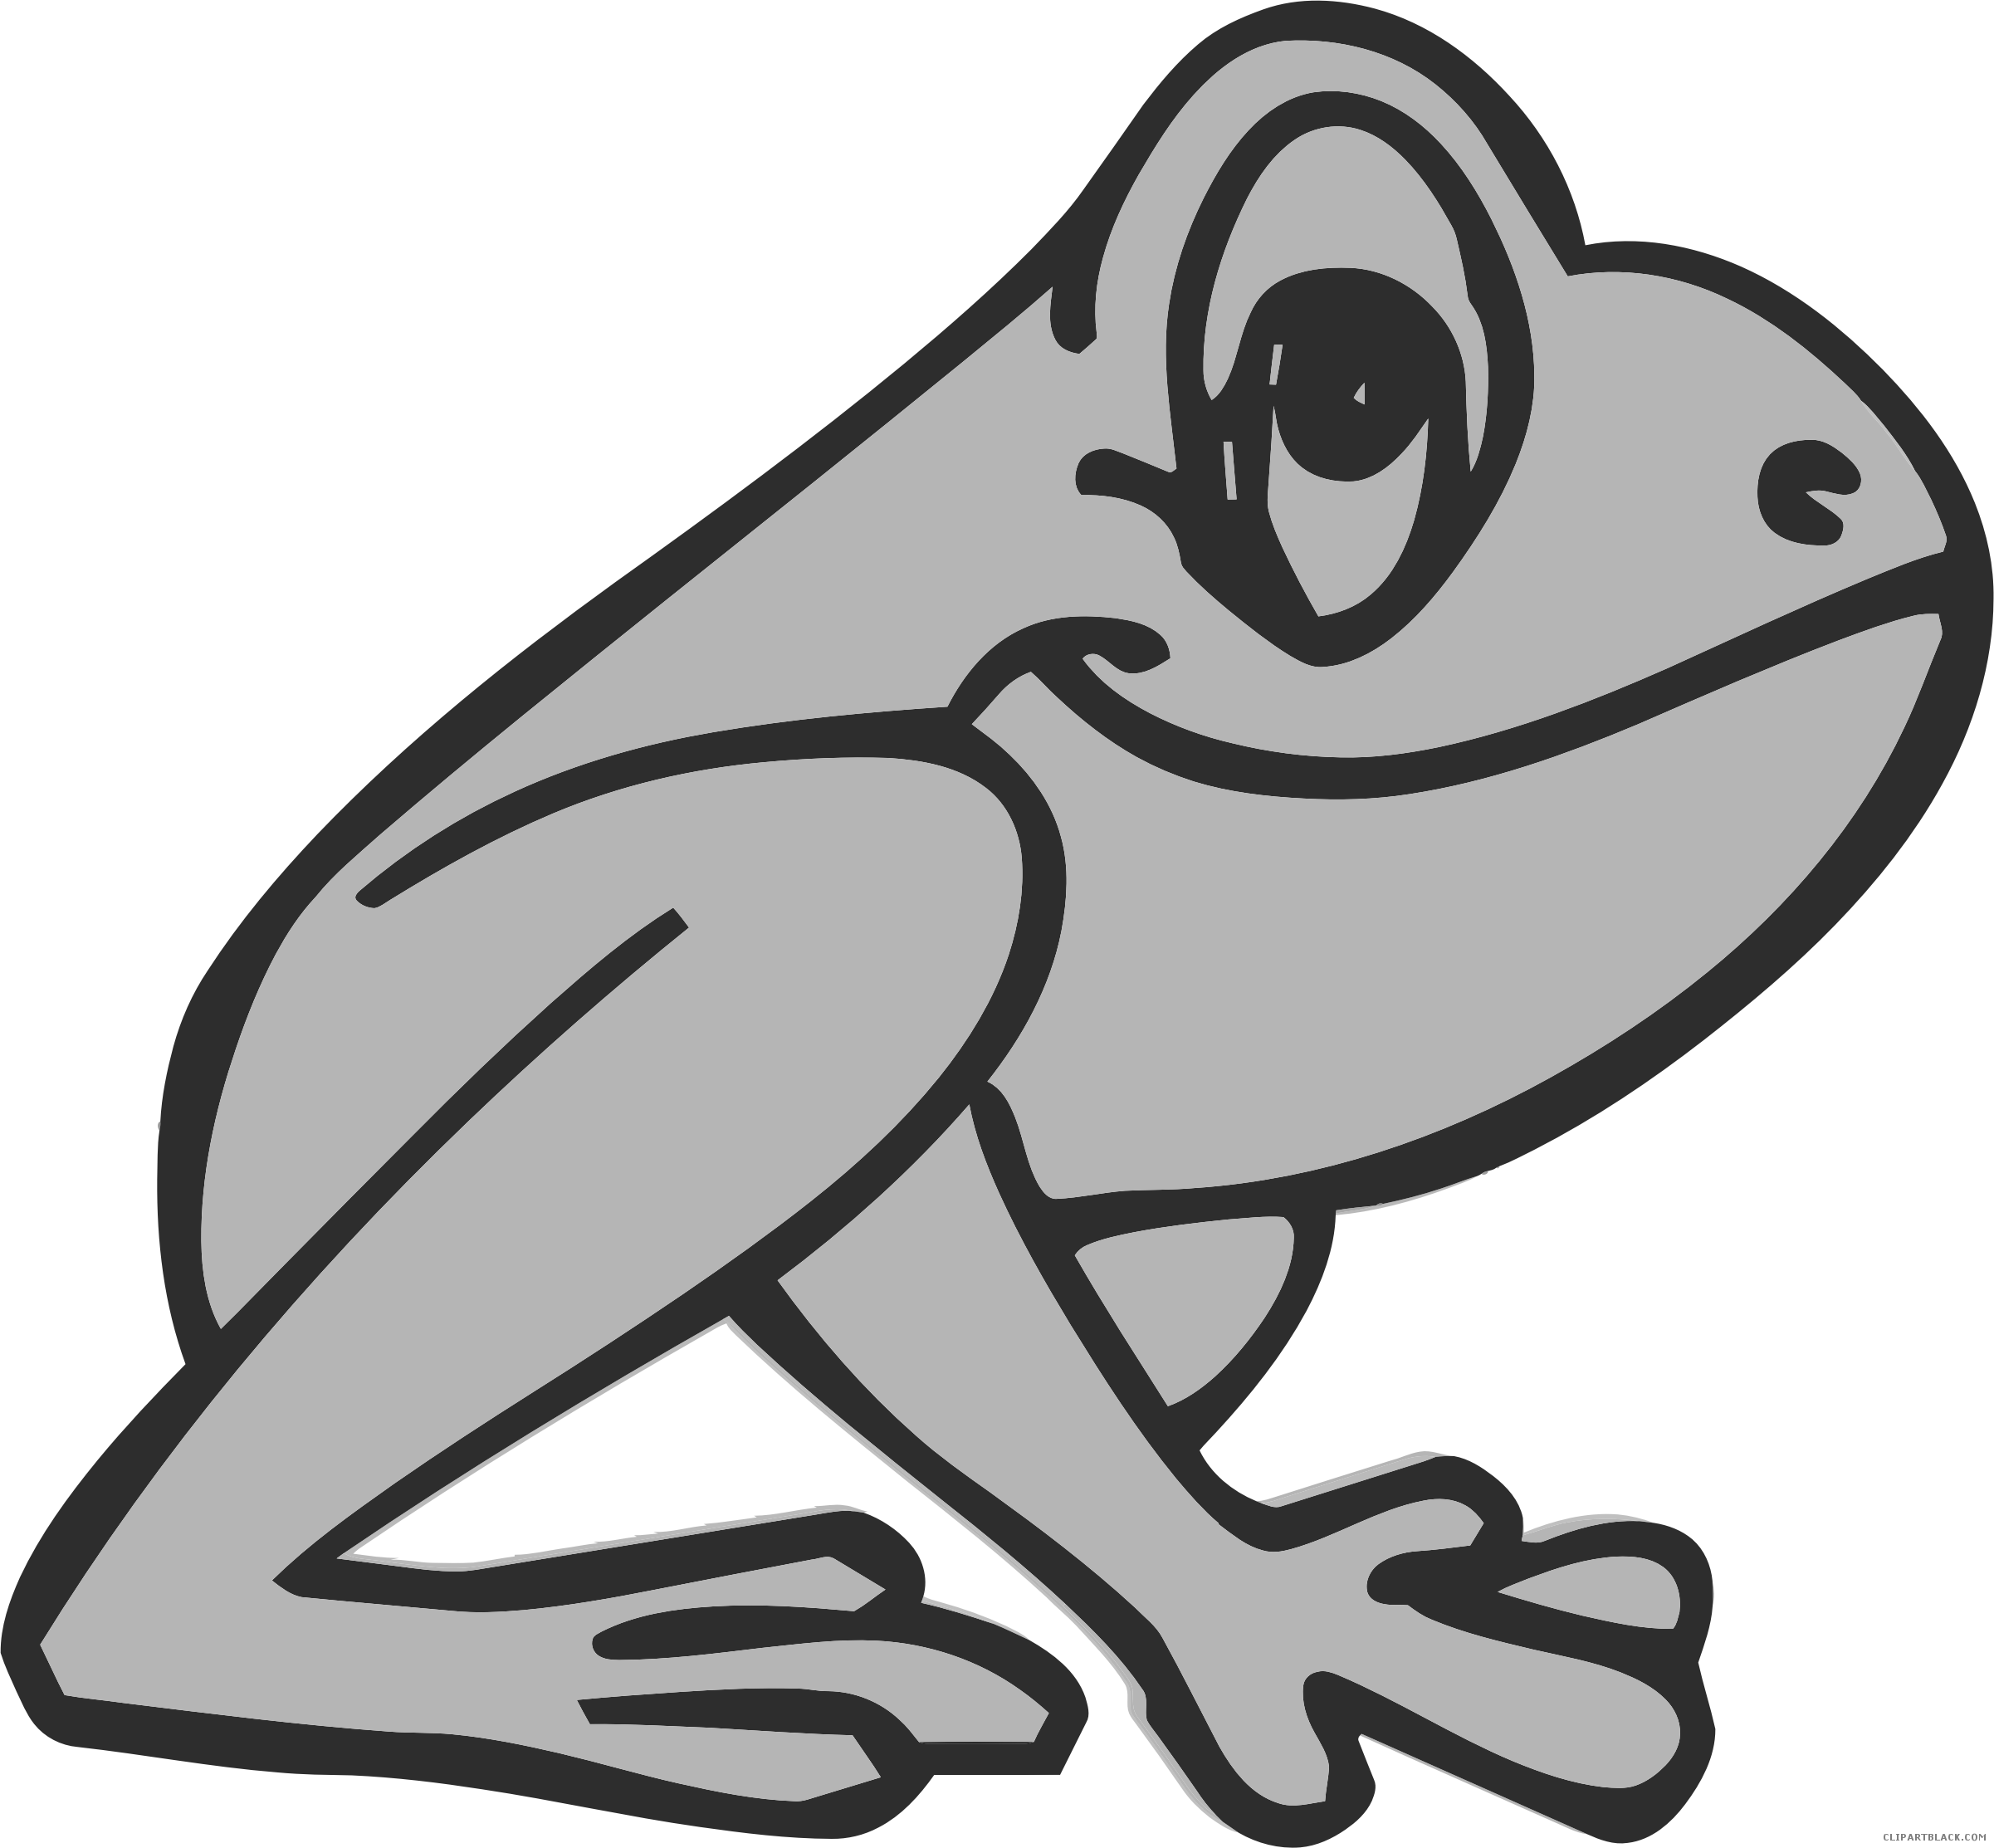 Frog clipart black and white. Cartoon page of clipartblack